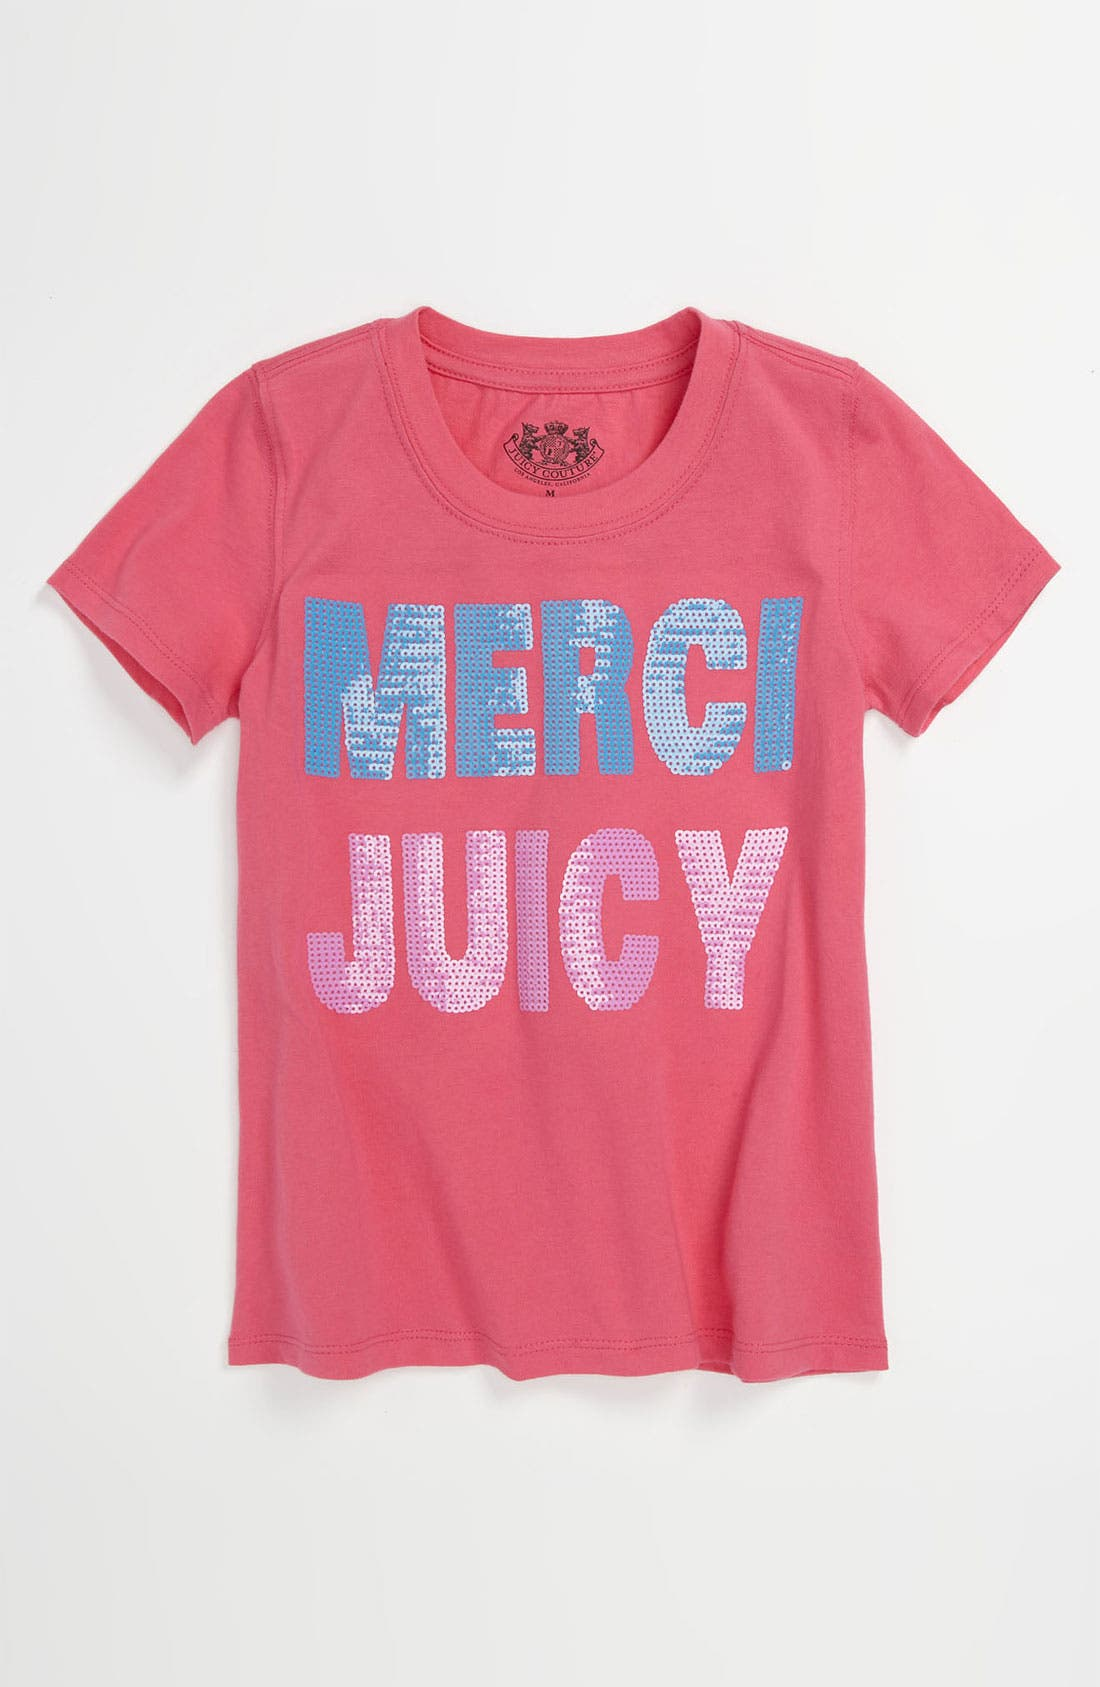 Main Image - Juicy Couture 'Merci Juicy' Tee (Little Girls & Big Girls)